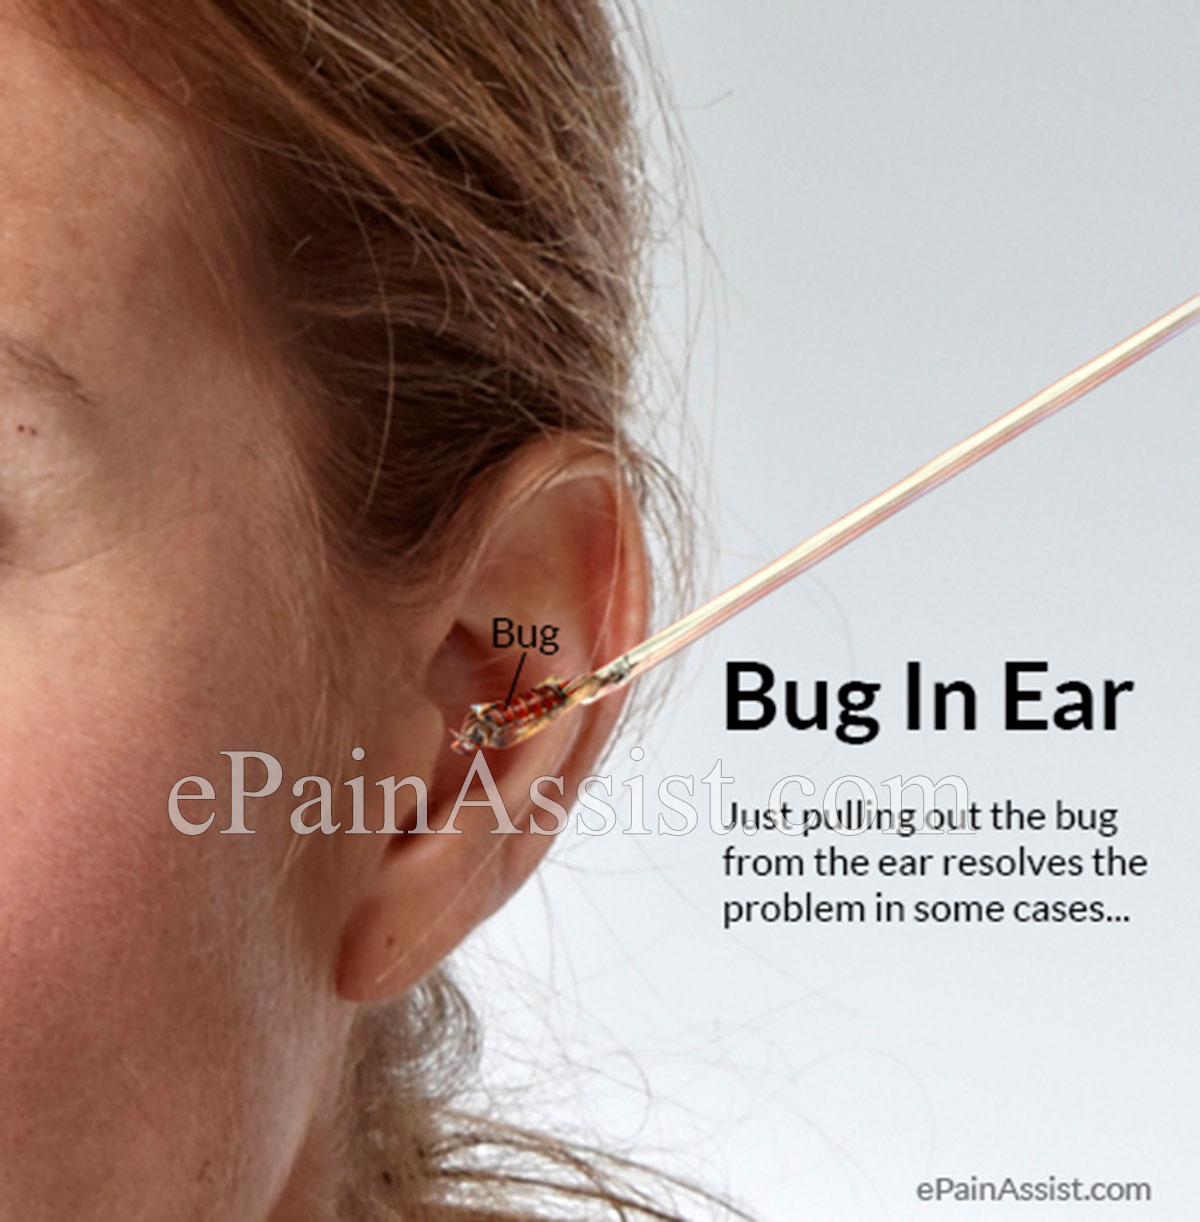 Bug In Ear